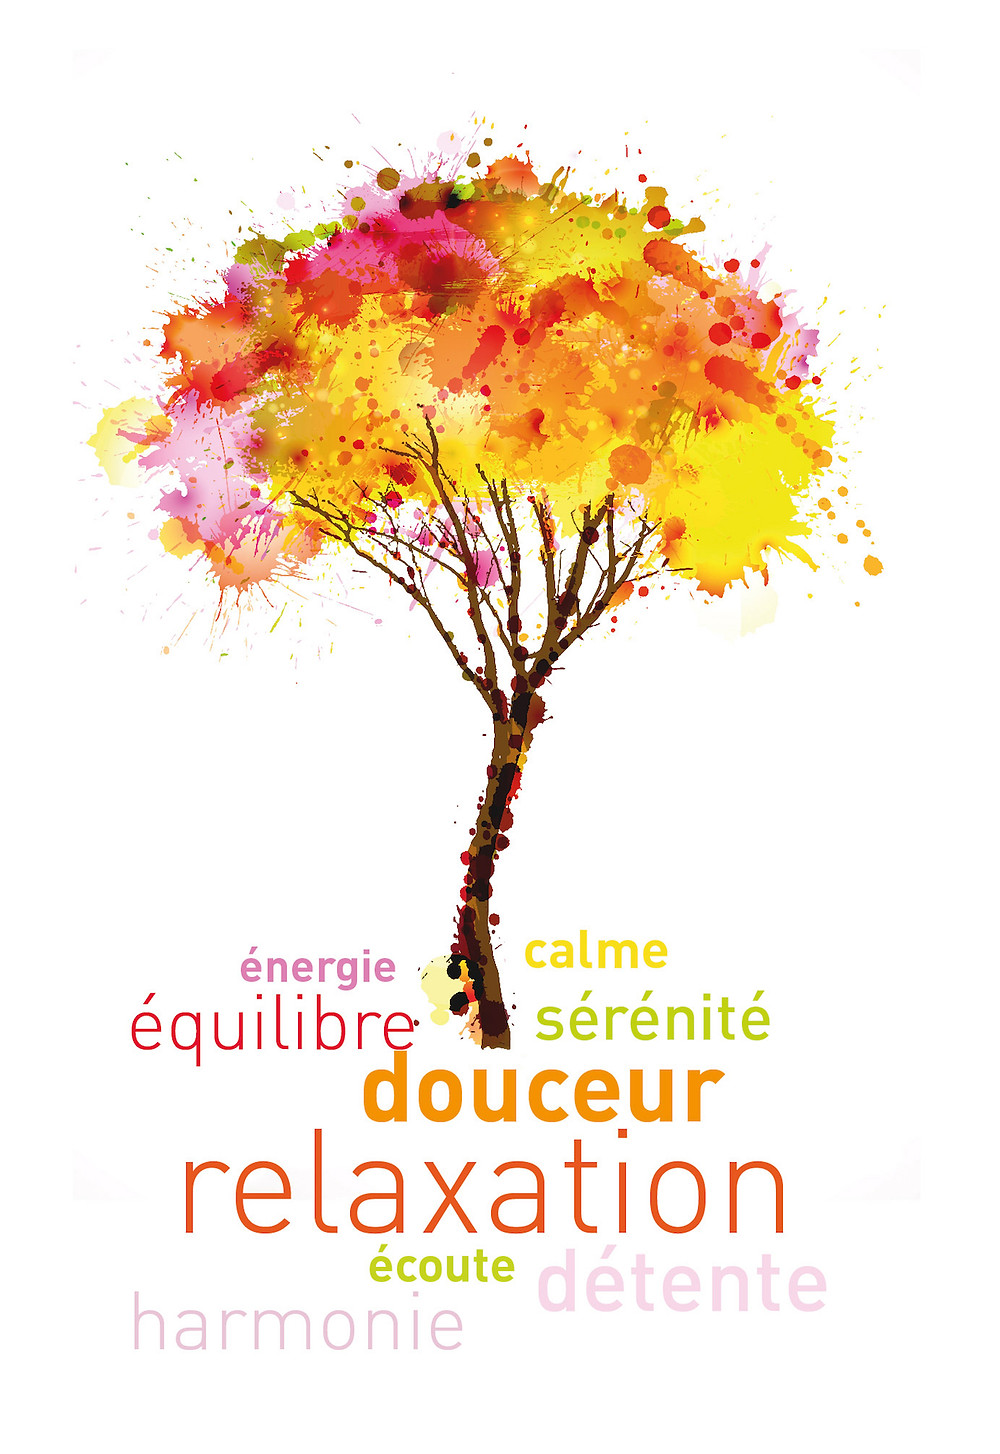 calme-equilibre-relaxation-ecoute-detente-sophrologie-ehe-limoges